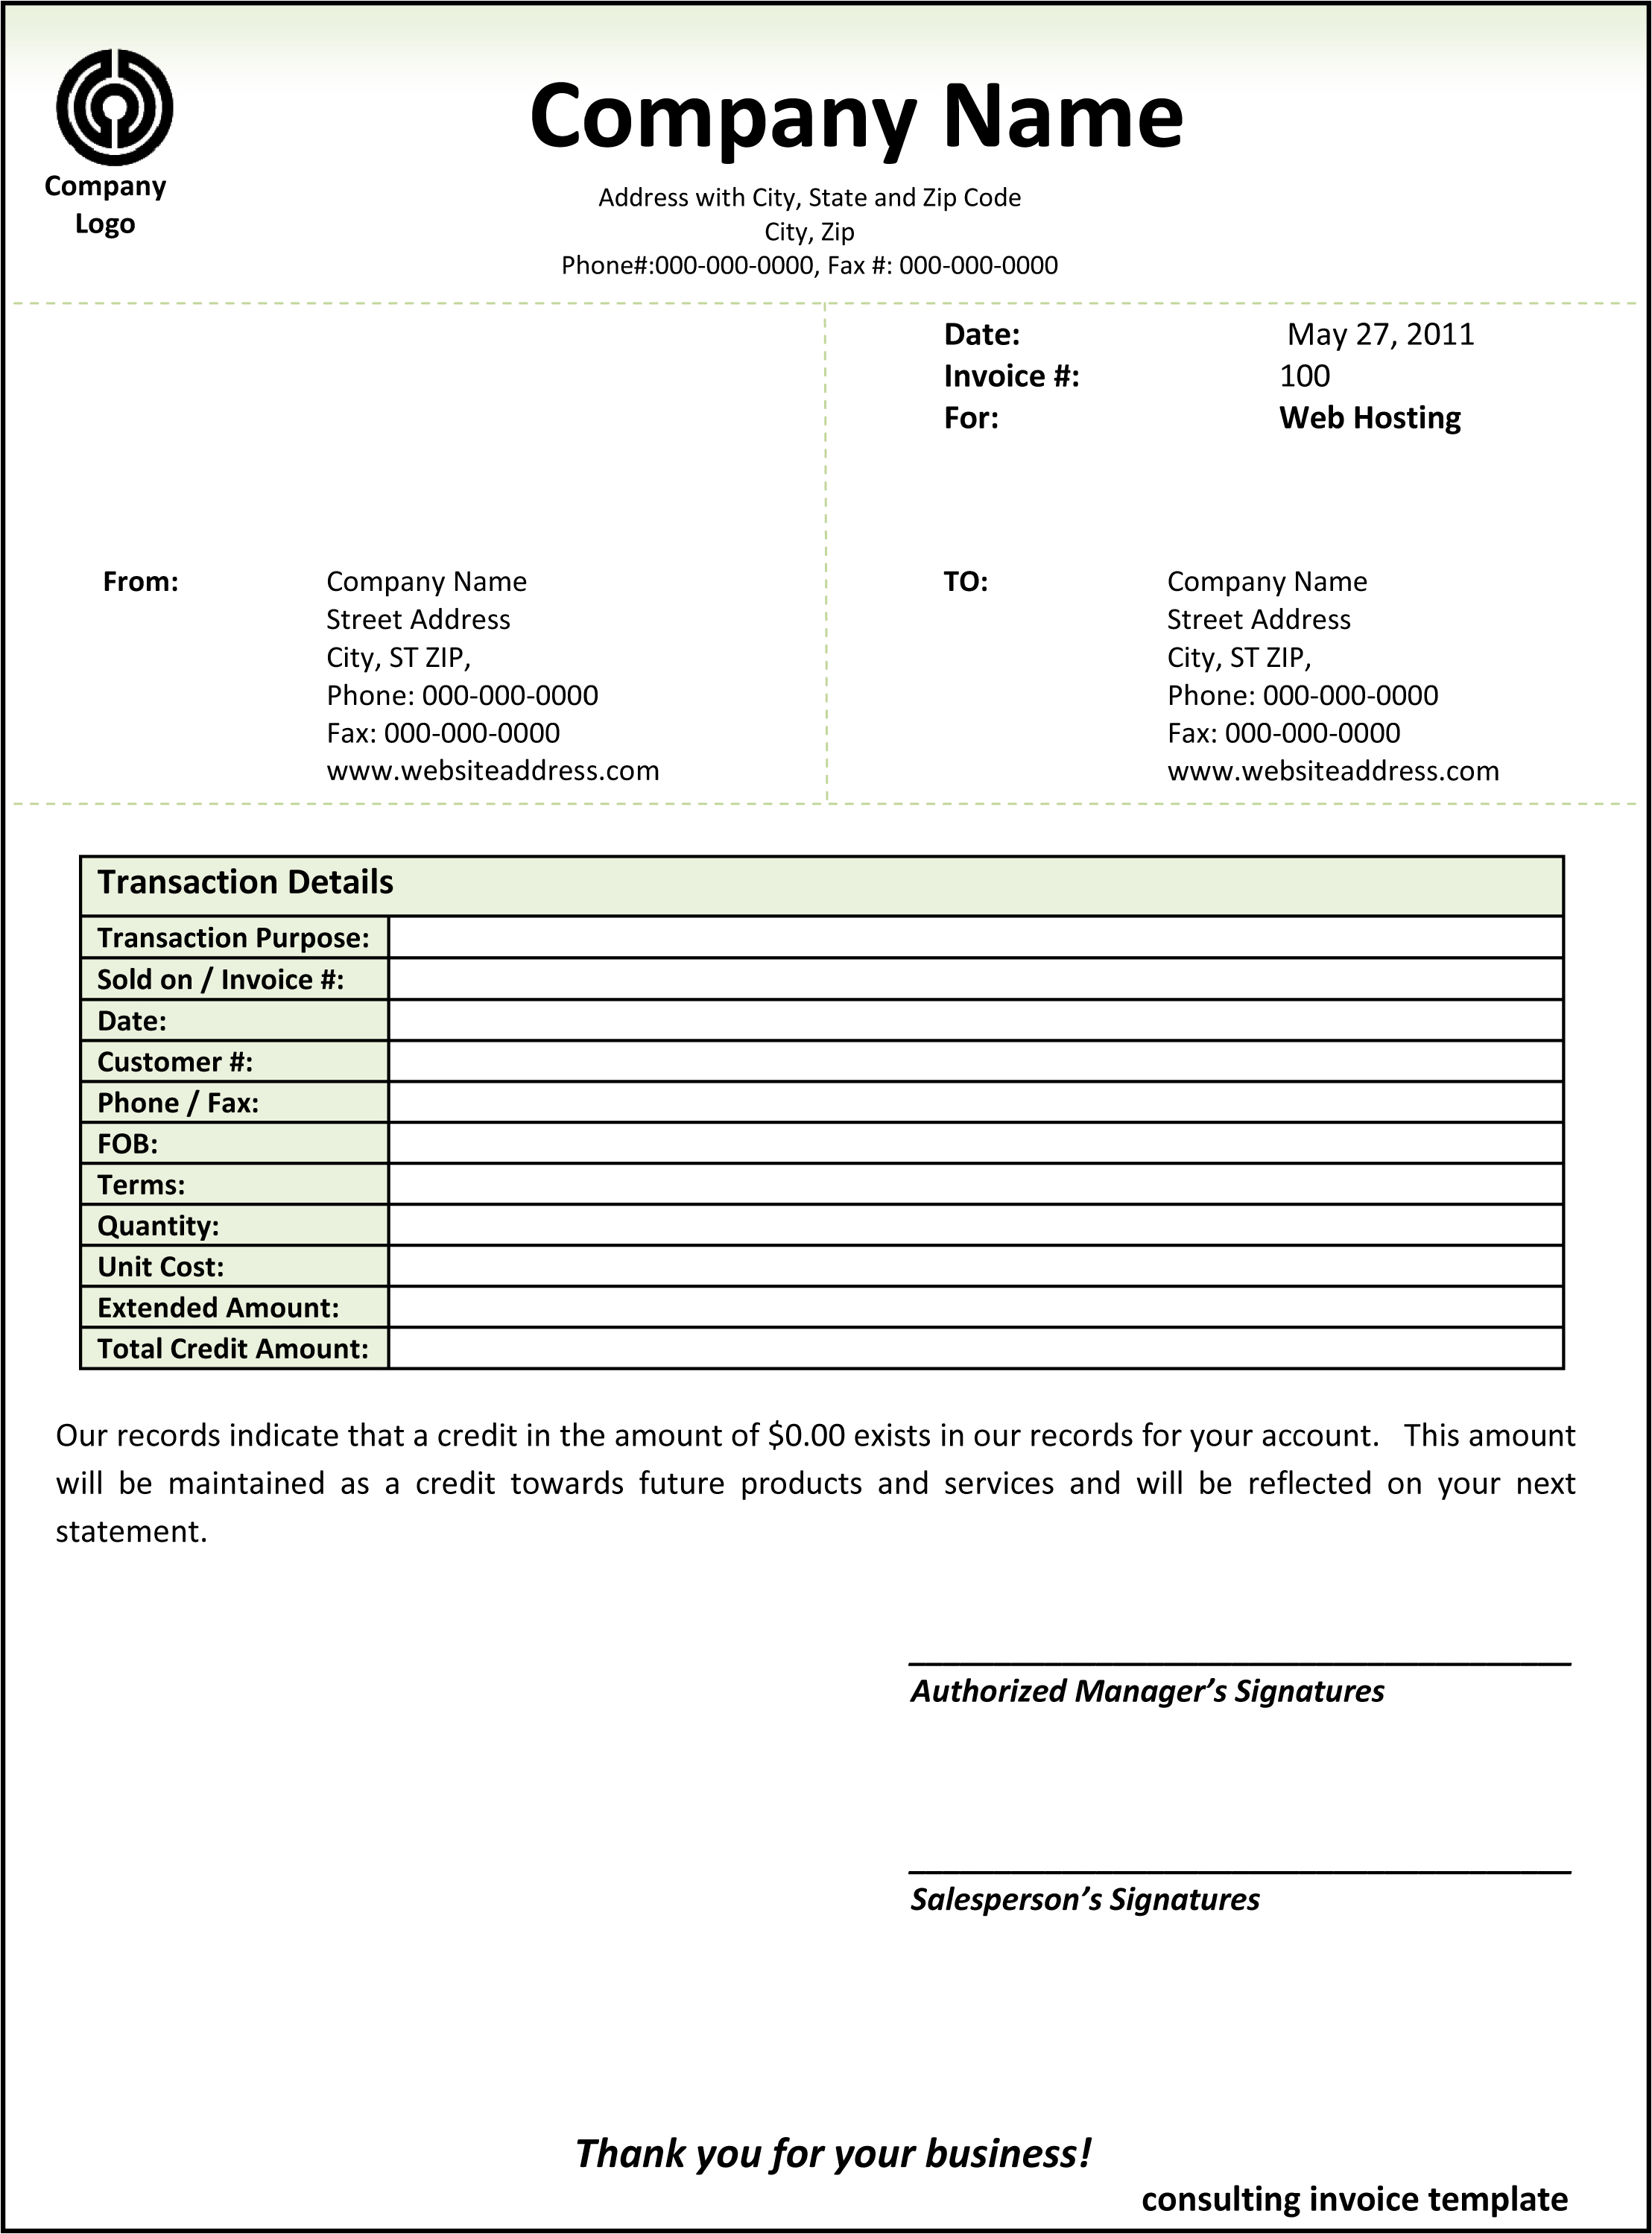 ms word invoice template free download – Invoice Template Microsoft Office